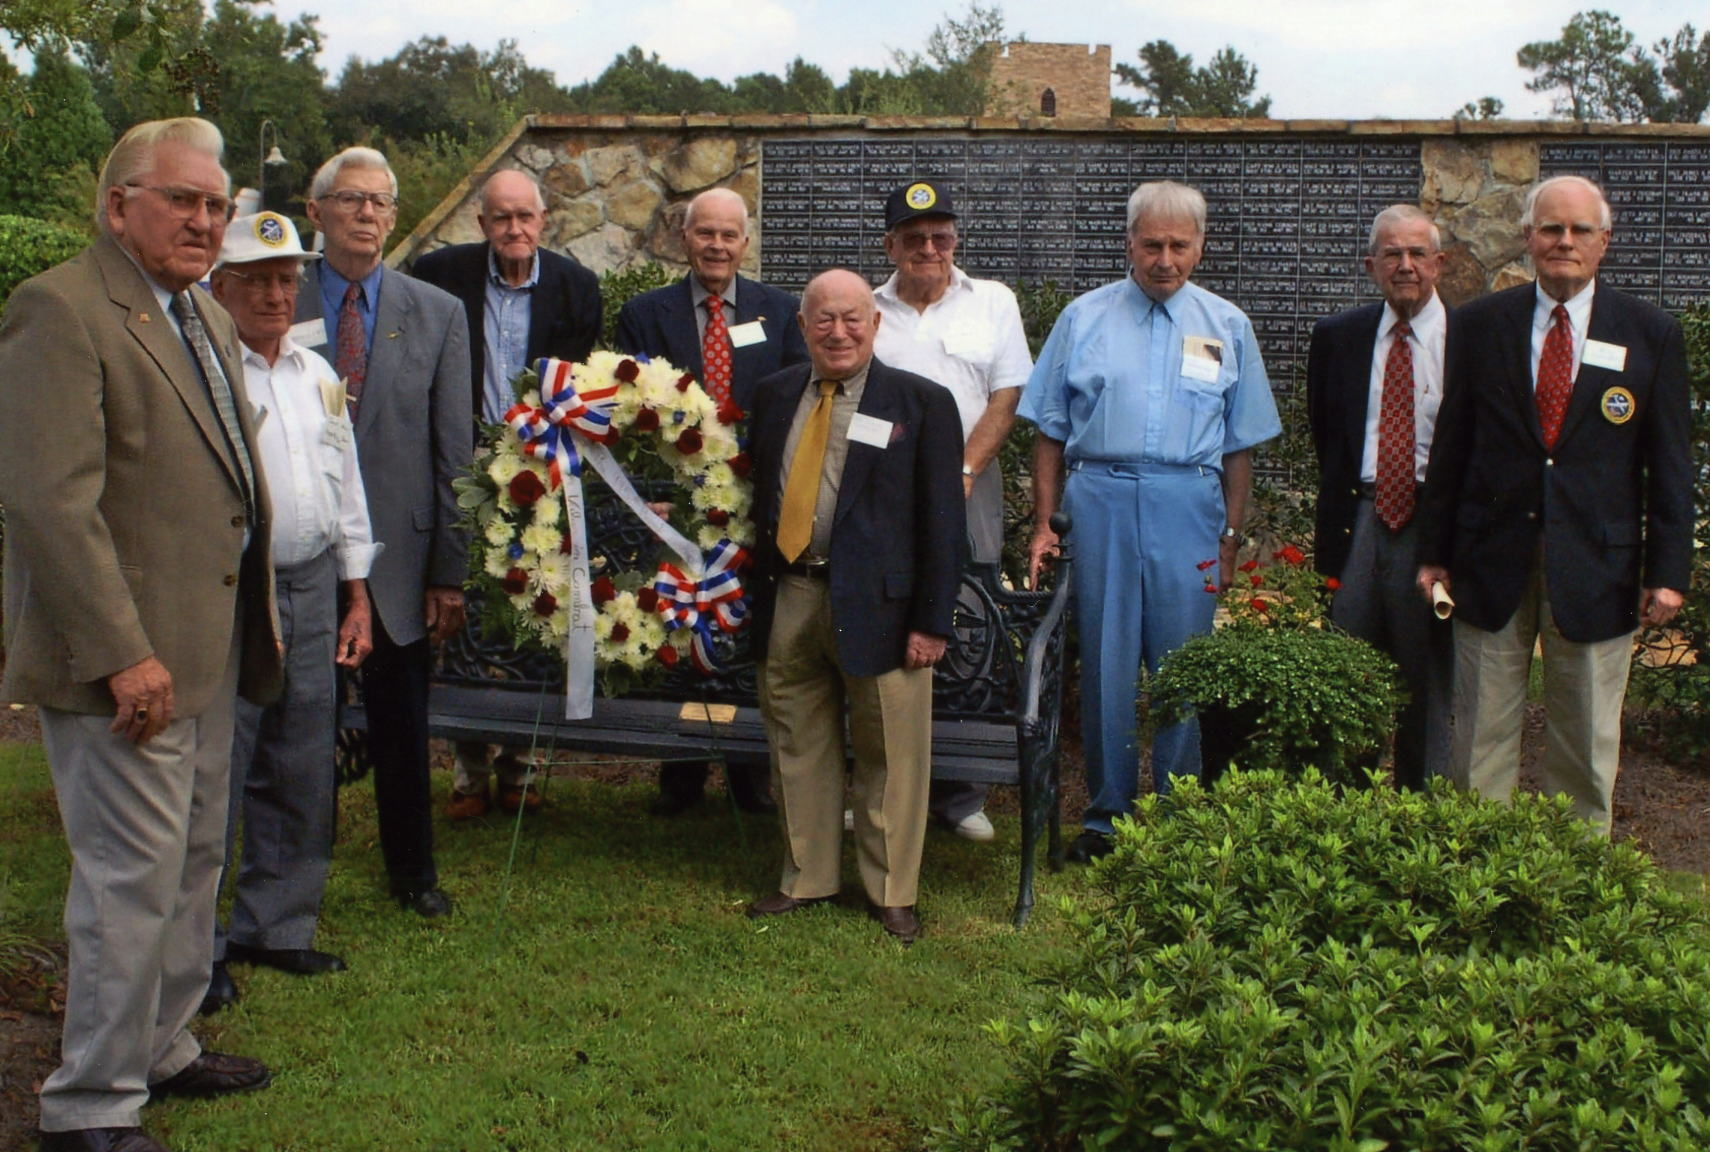 Fall, 2007 in America. Kassel Mission and 445th BG veterans stand in front of the newly dedicated 445th BG bench at the Mighty Eighth Museum in Pooler, Georgia in 2006.